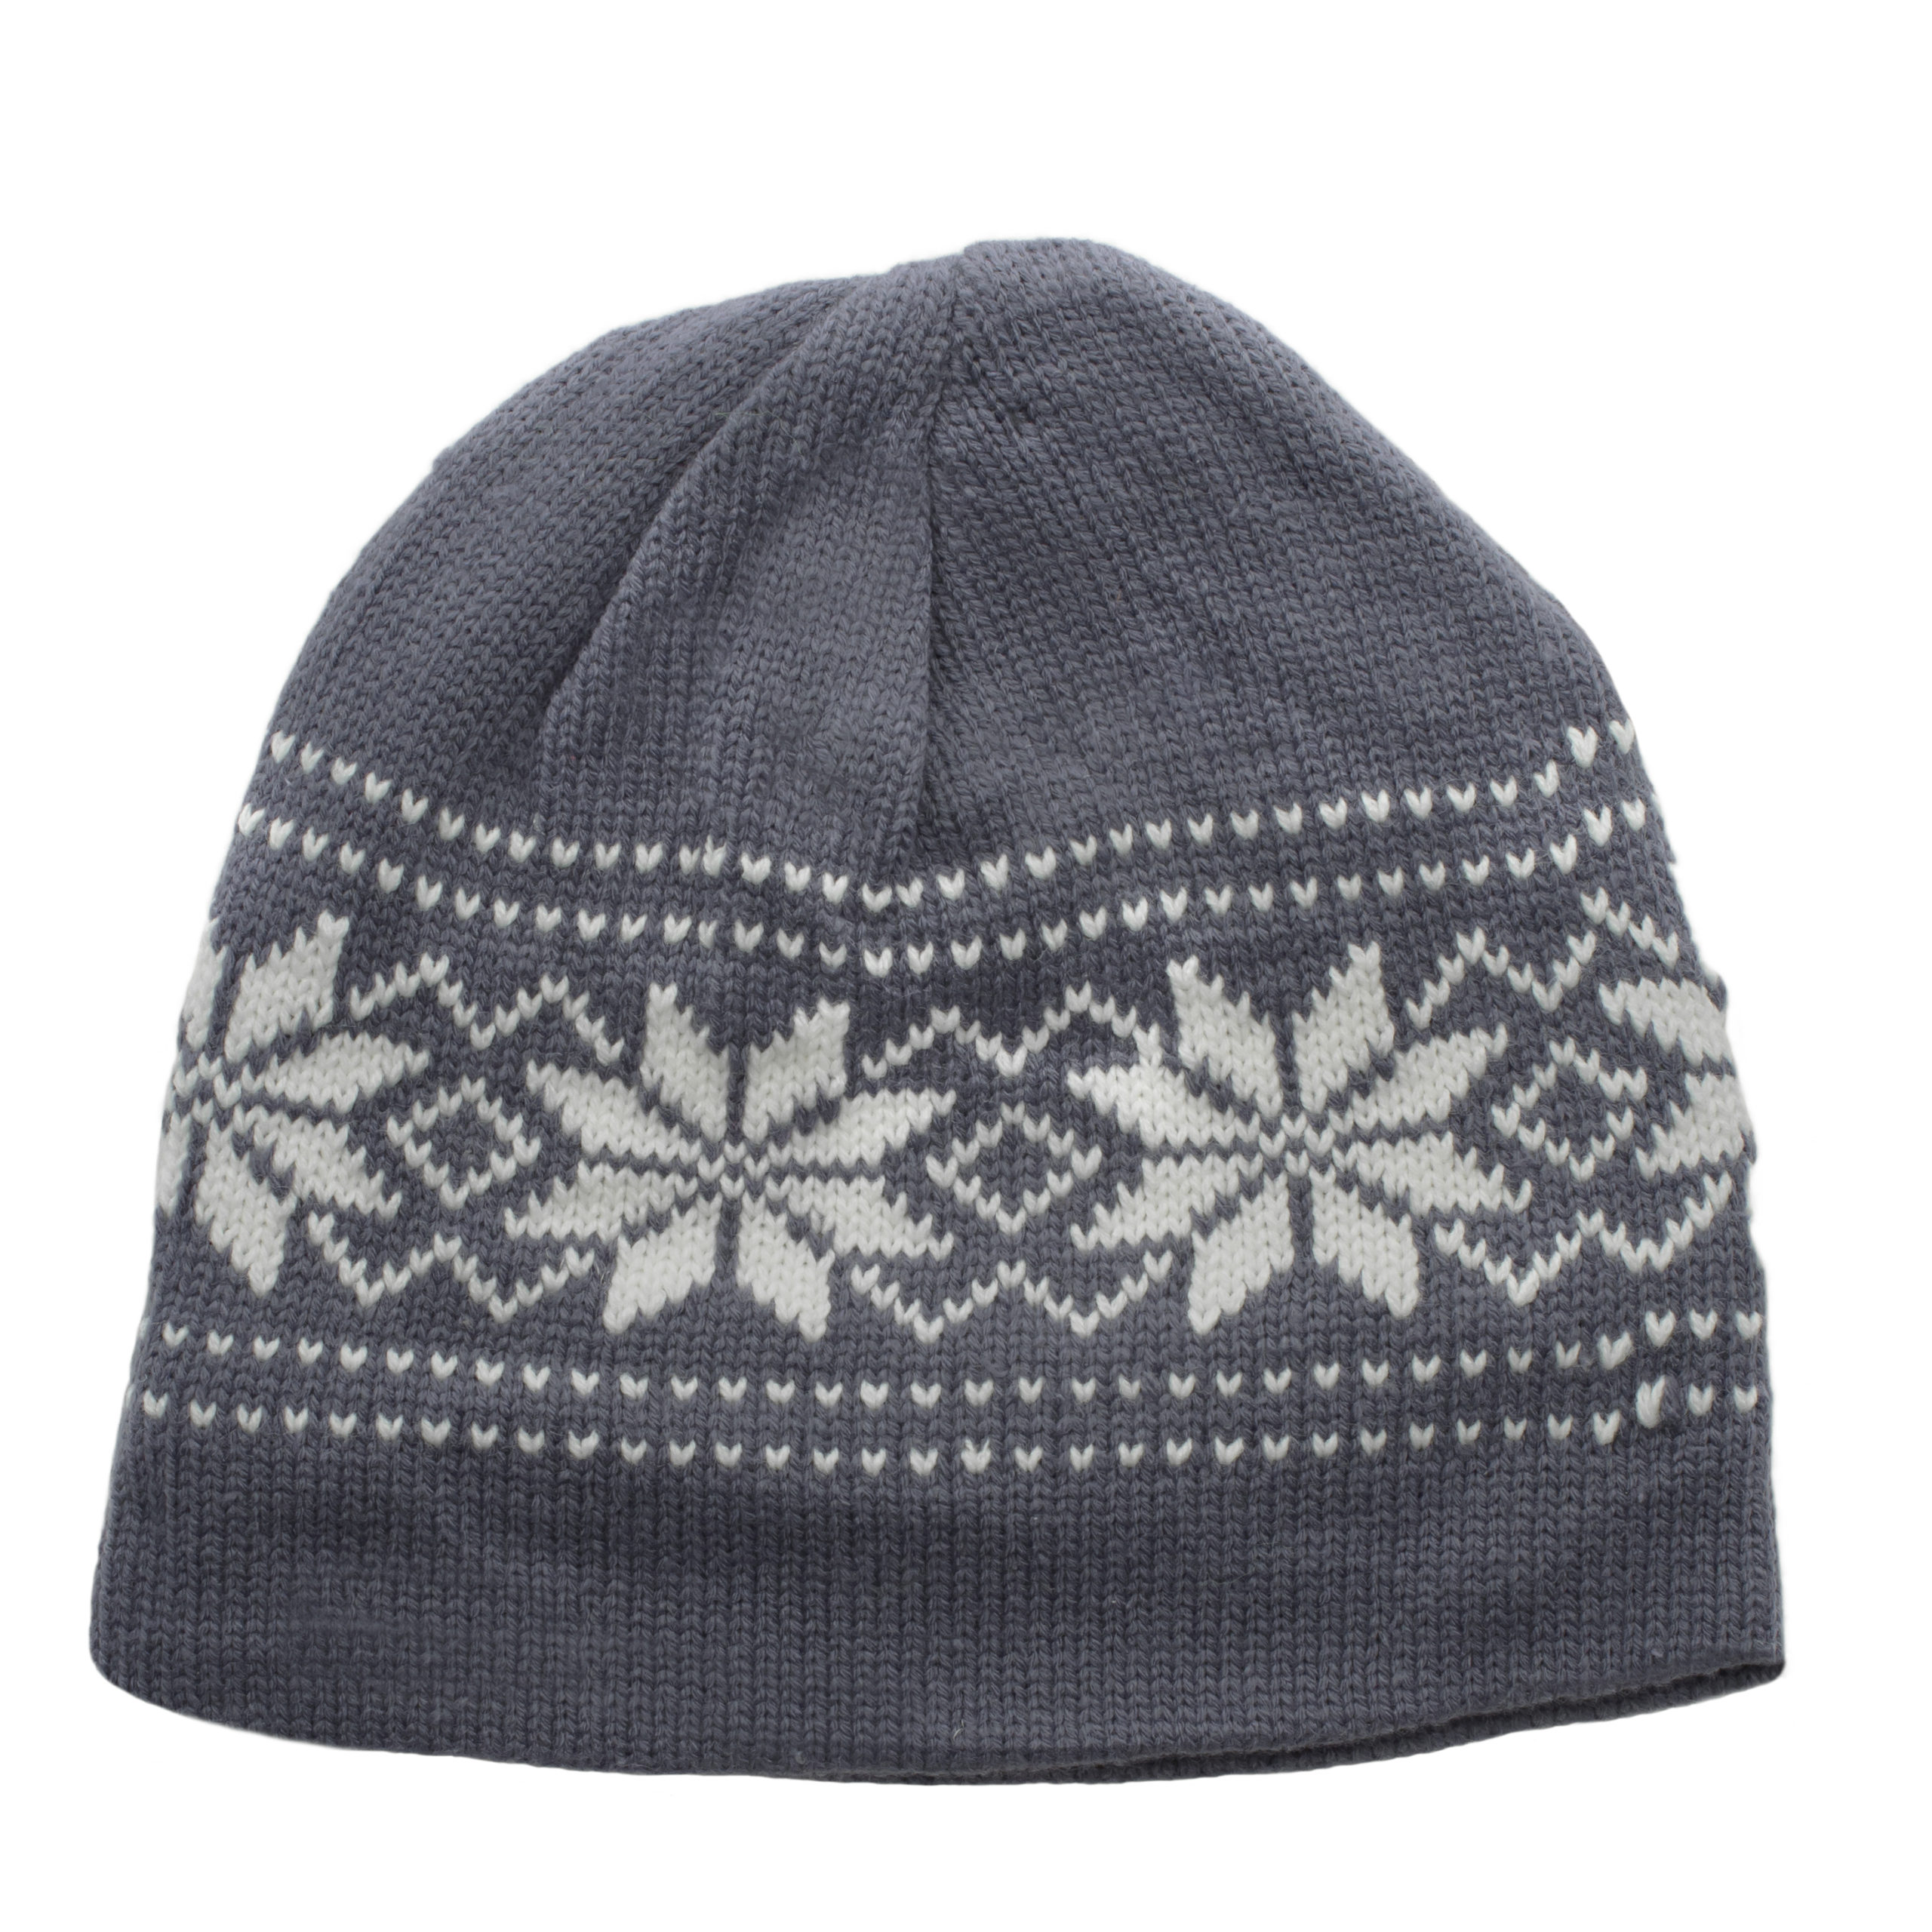 WOMAN KNITTED BEANIE-GREY